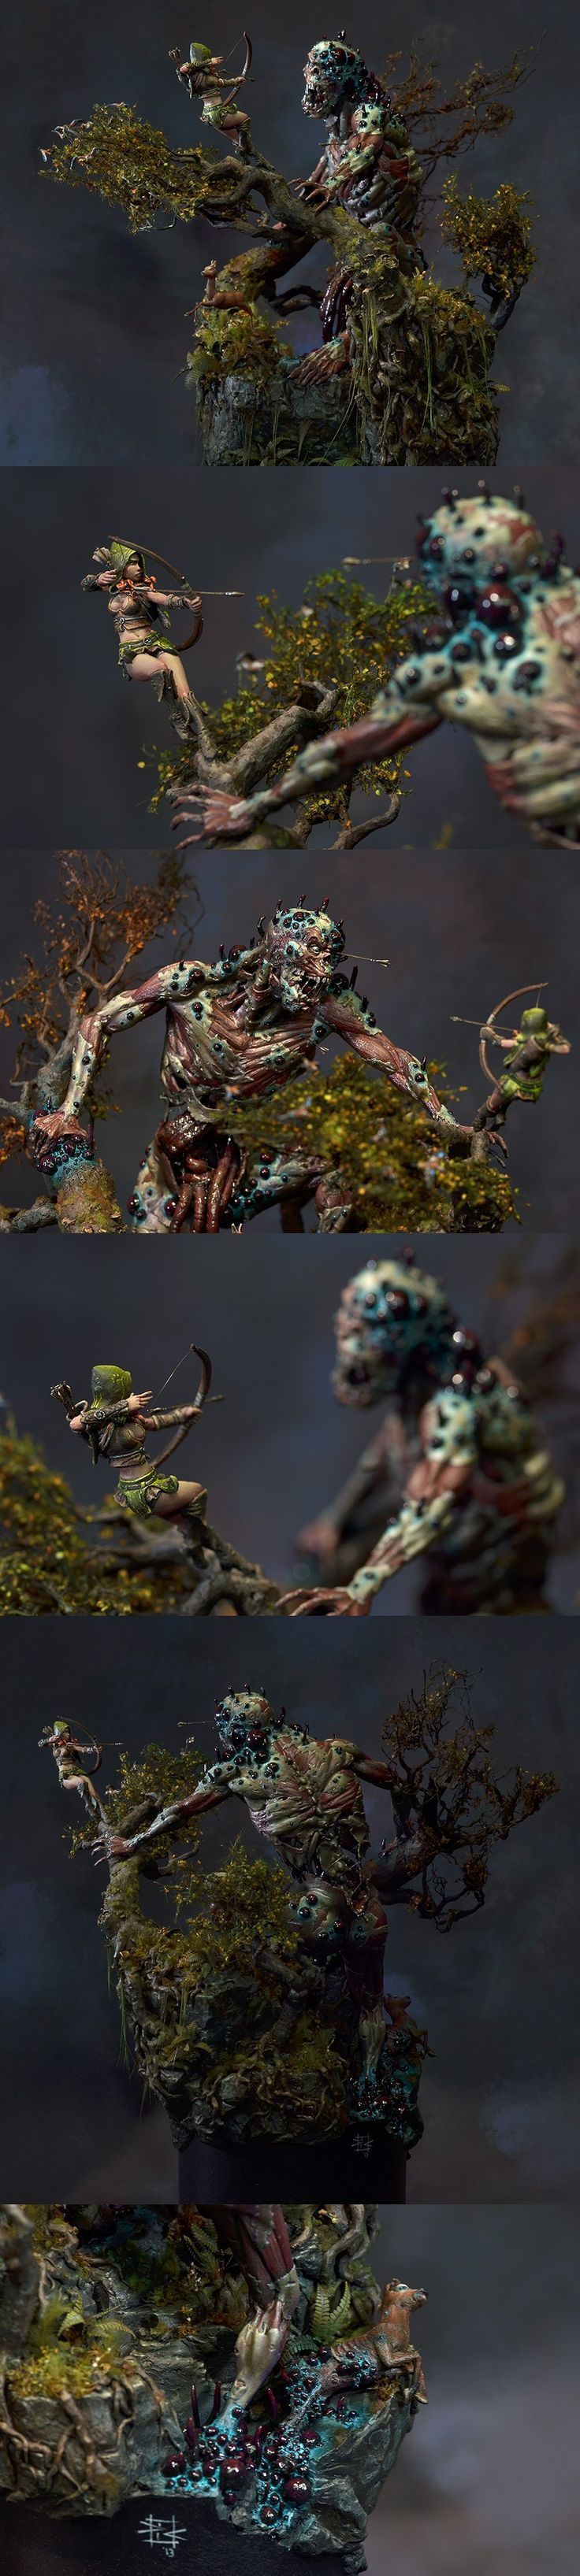 Touch of Death - Detail View. could you strip flesh on tyranids